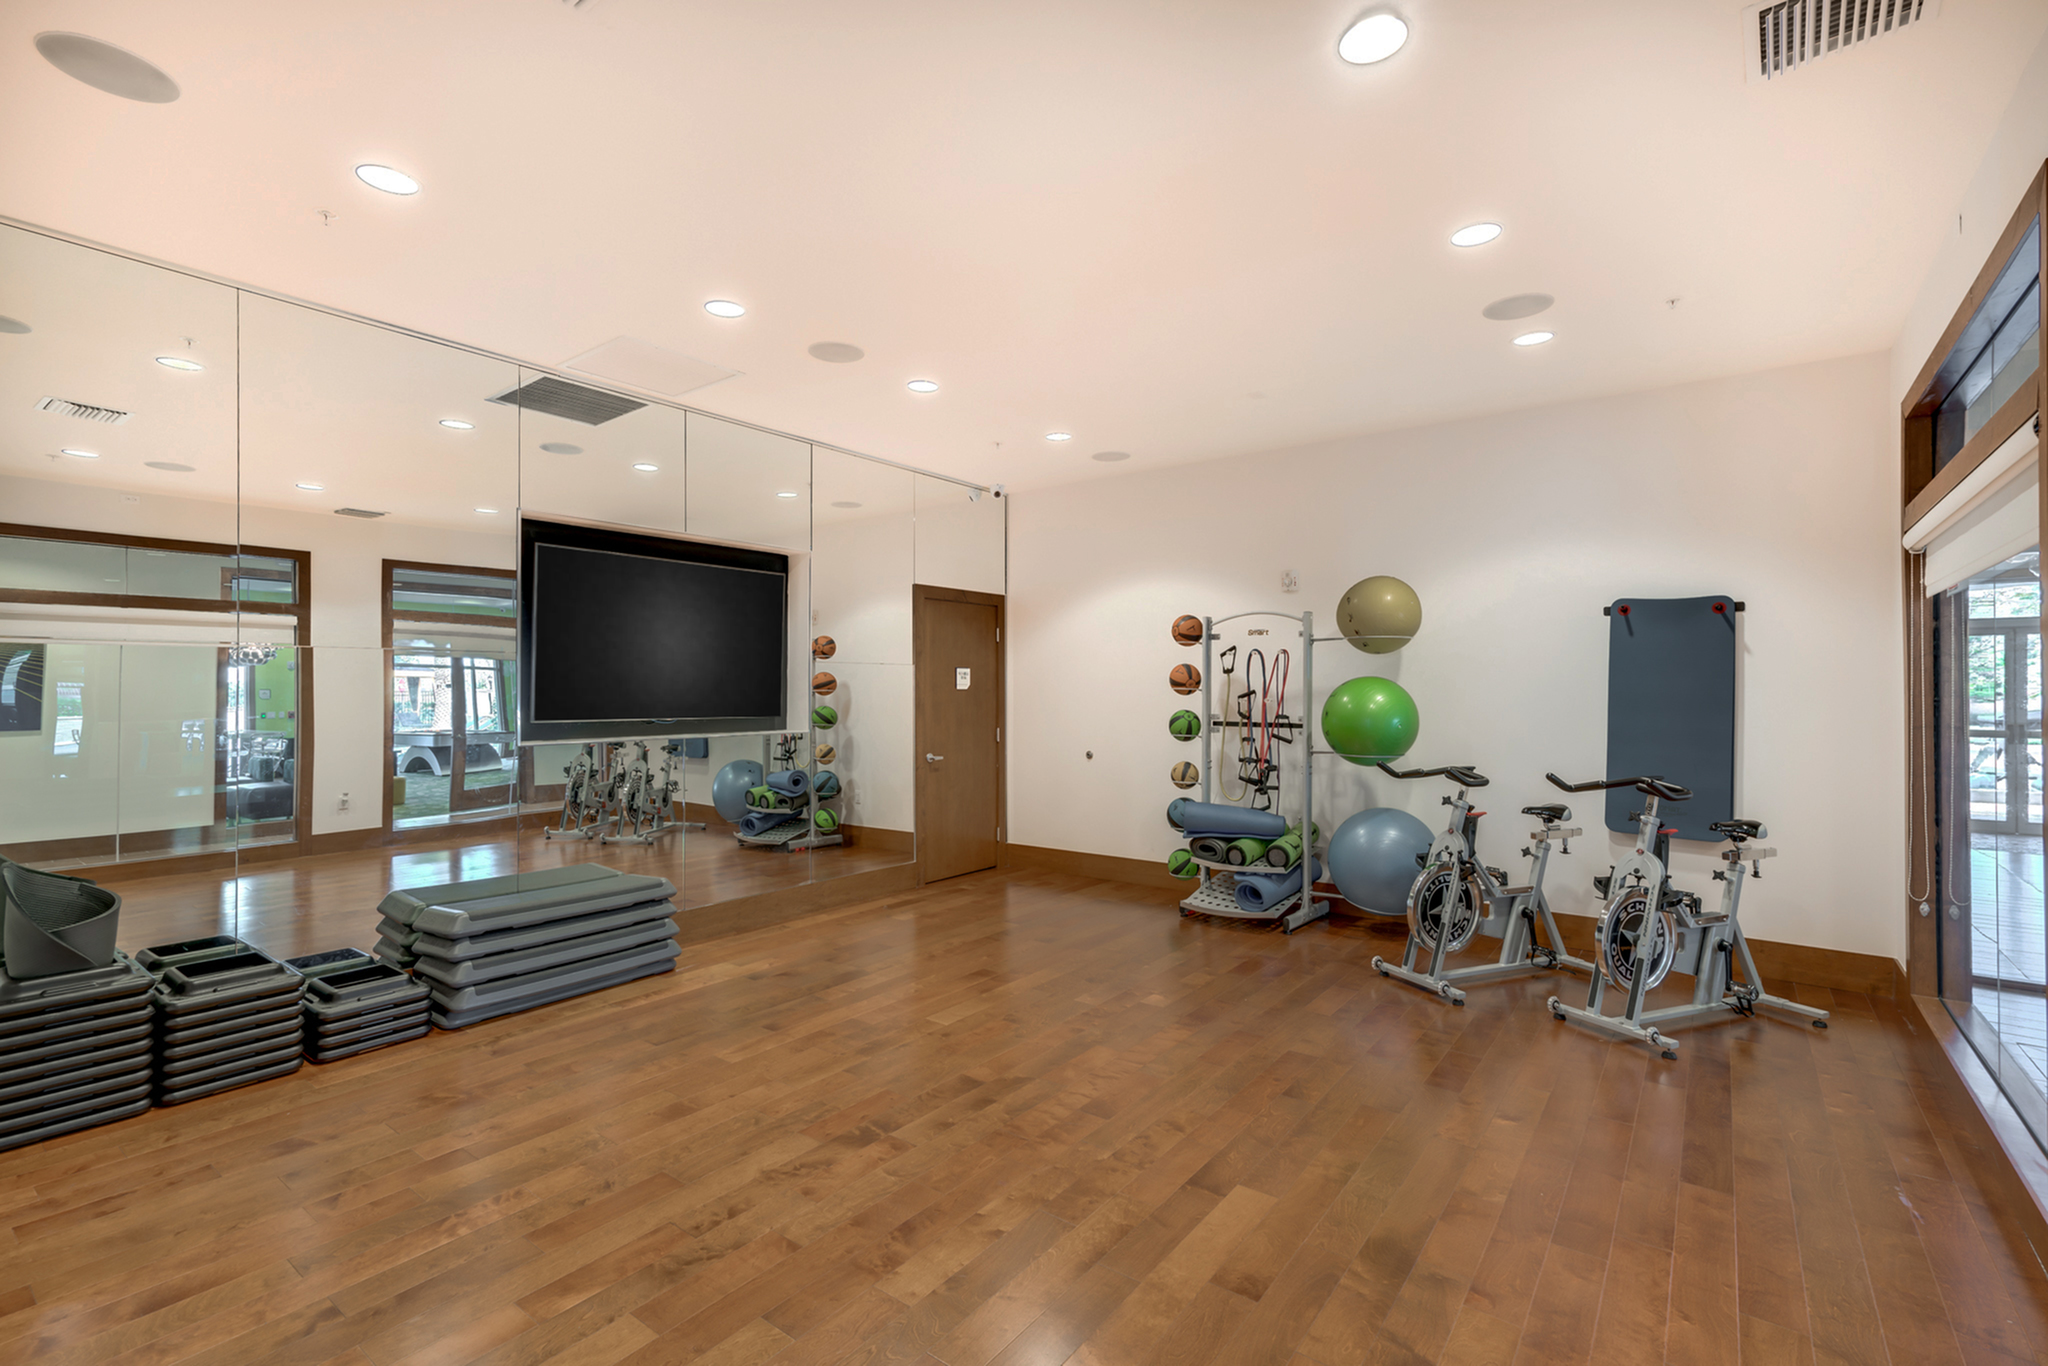 View of Yoga Space, Showing Stationary Bicycles, Exercise Balls, Medicine Balls, and Yoga Mats, TV at The Marq Highland Park Apartments